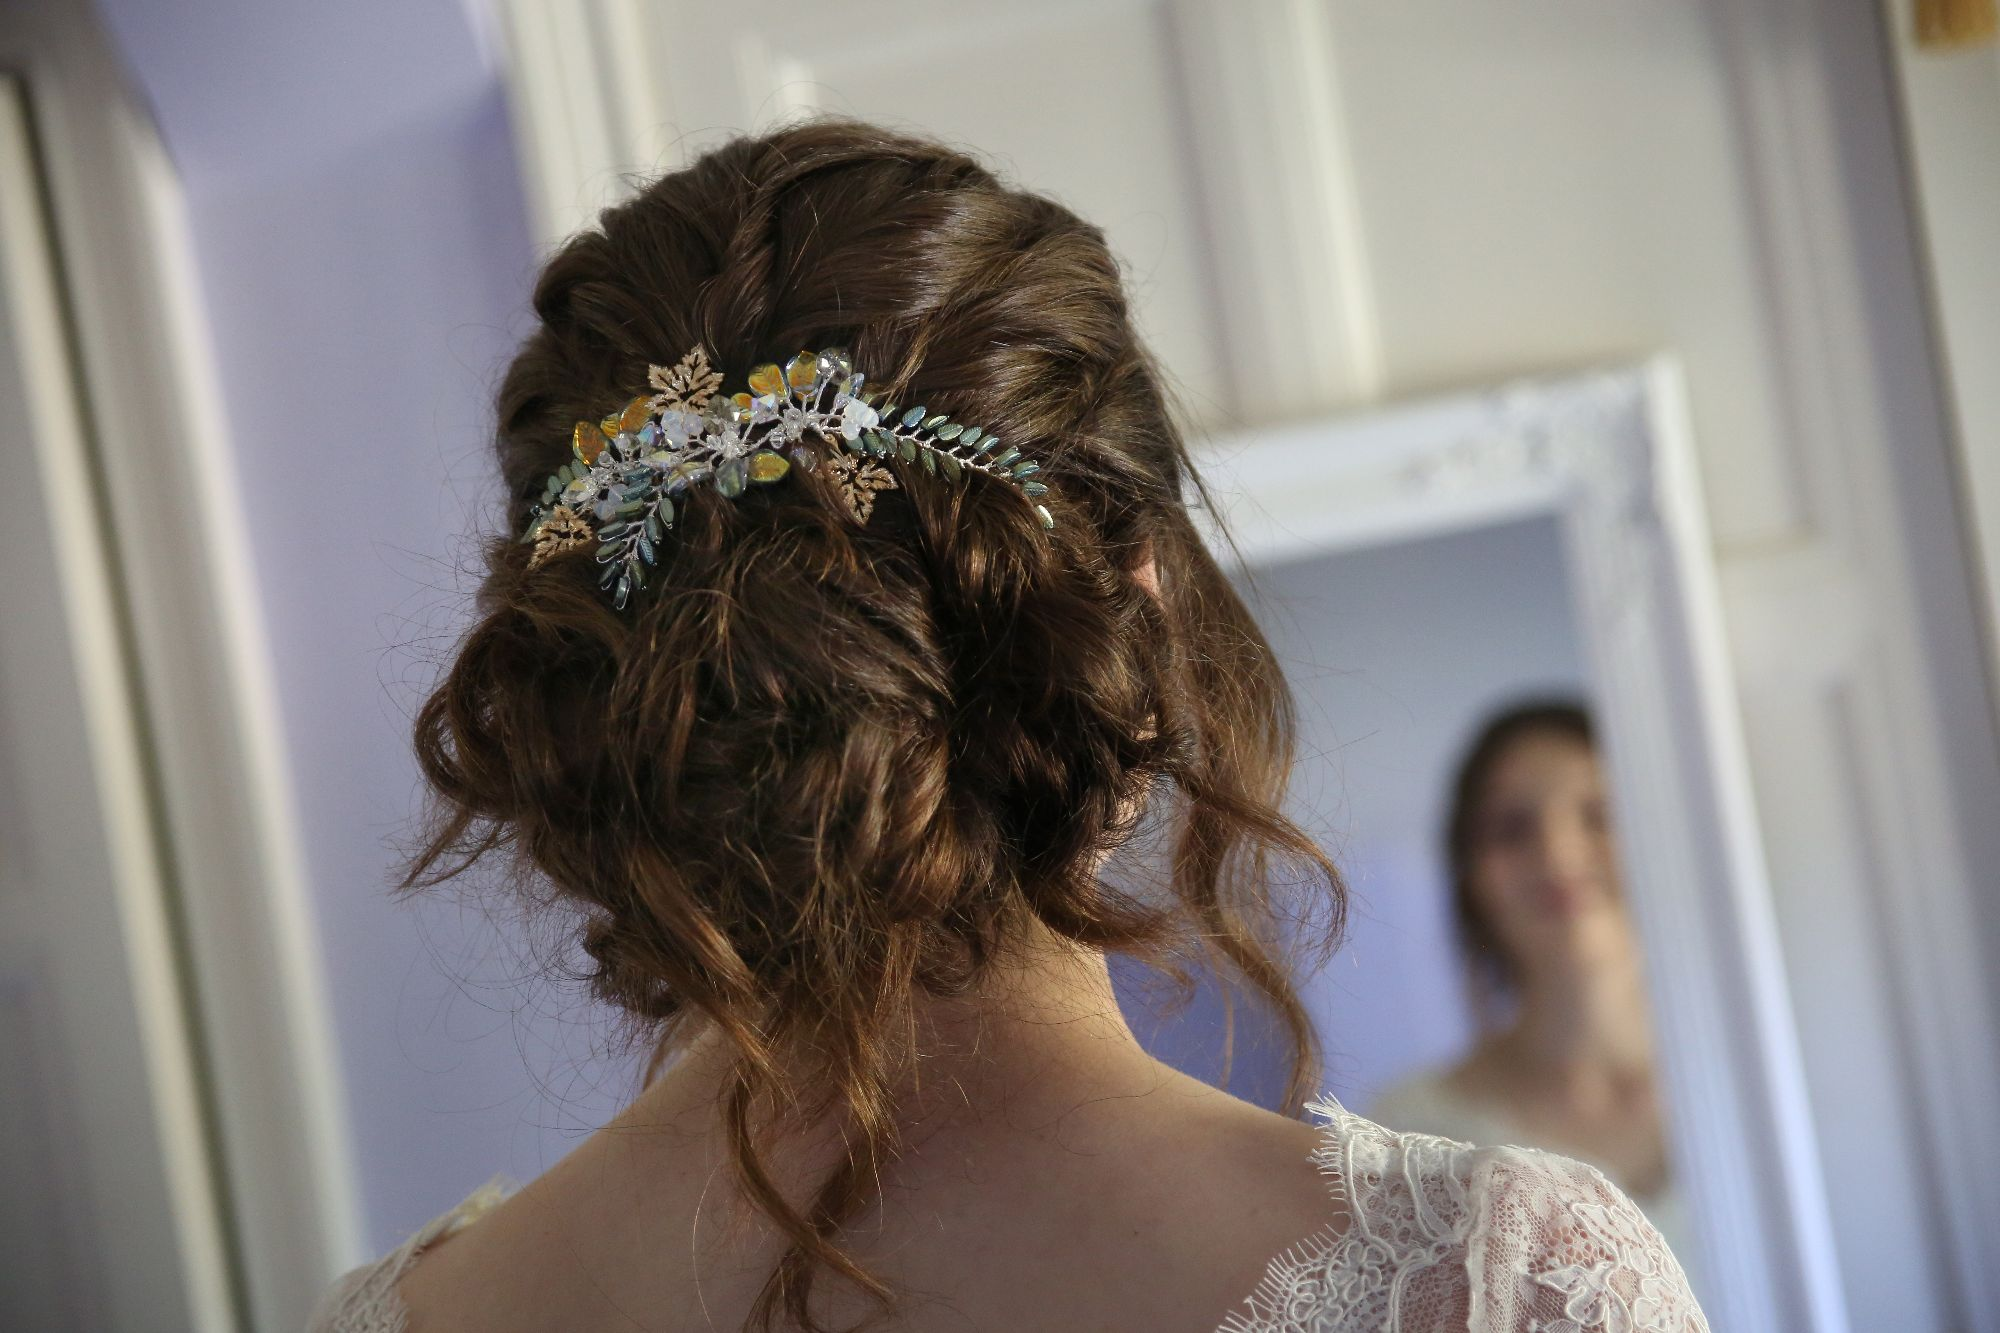 Bridal-wedding&occasion-hair-accessories-UK (9)